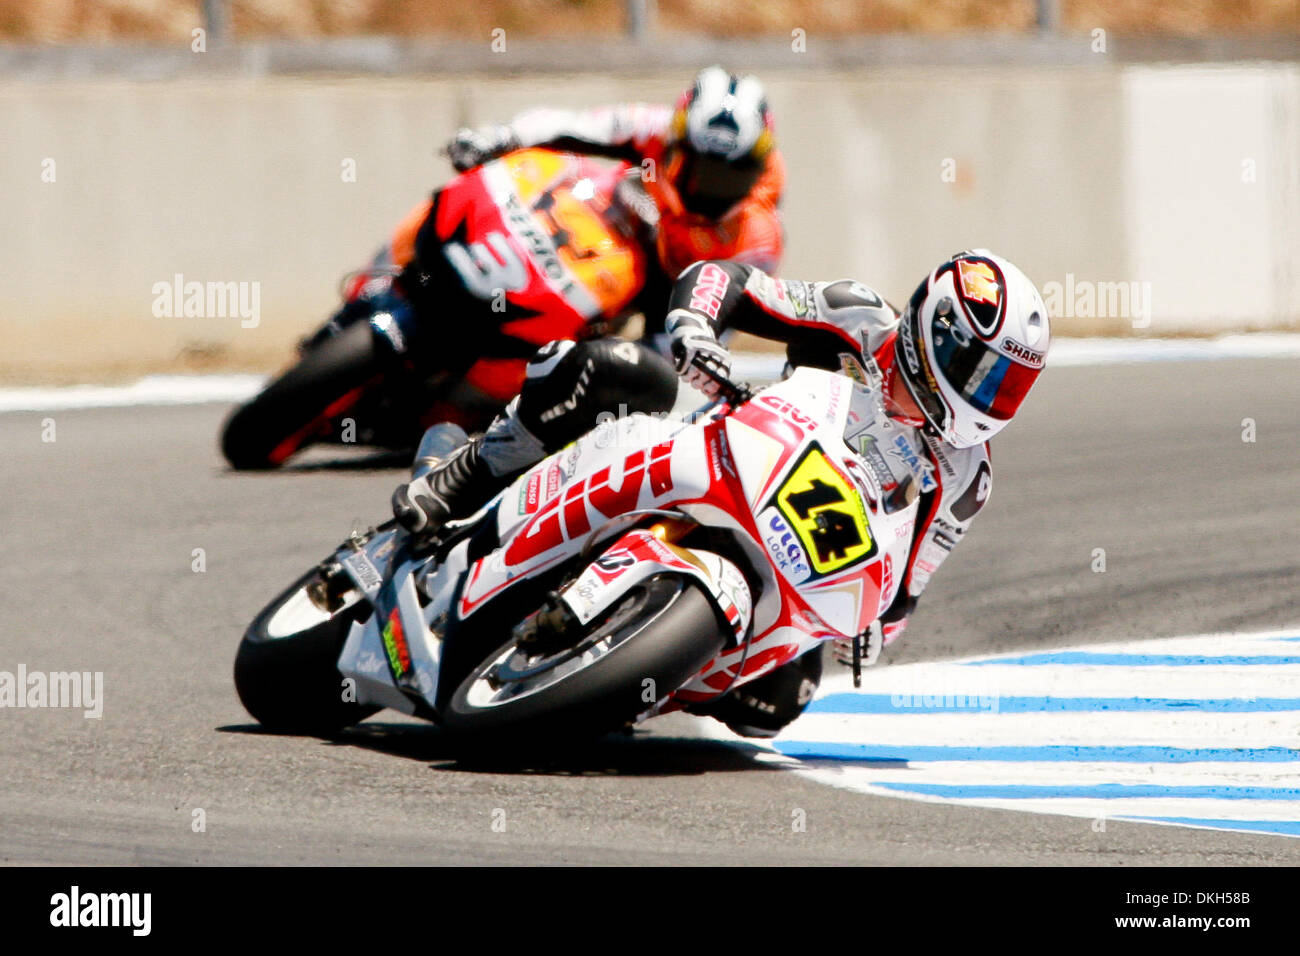 Randy De Puniet, of Maisons-Laffitte, France, rides the #14 motorcycle for the LCR Honda MotoGP team and Dani Perdosa,Stock Photo